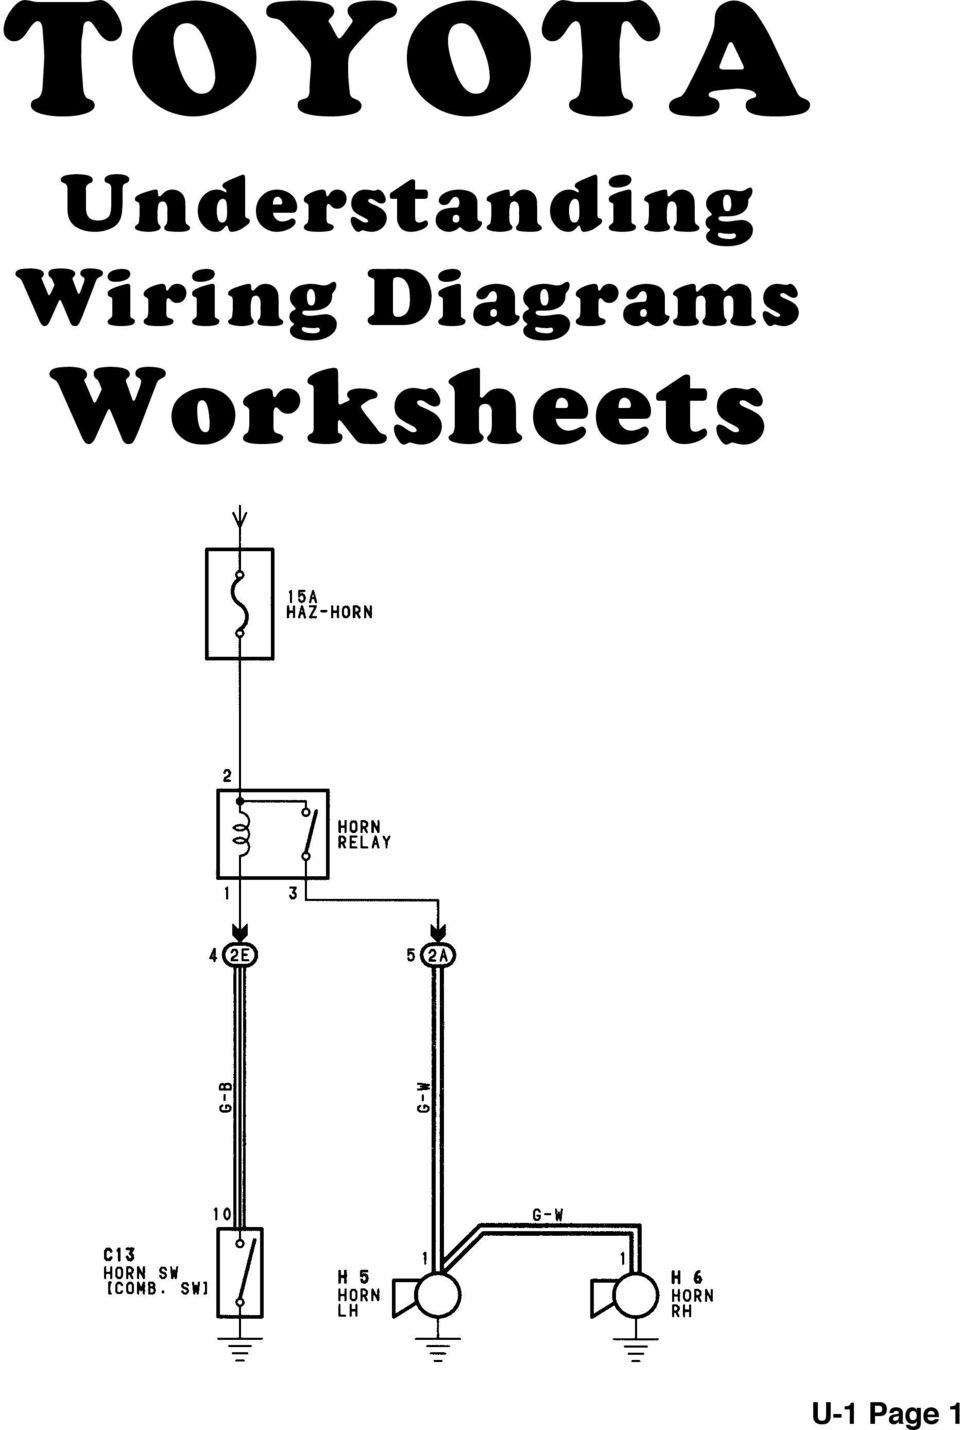 body electrical toyota electrical wiring diagram workbook  assignment version 1 8 worksheets